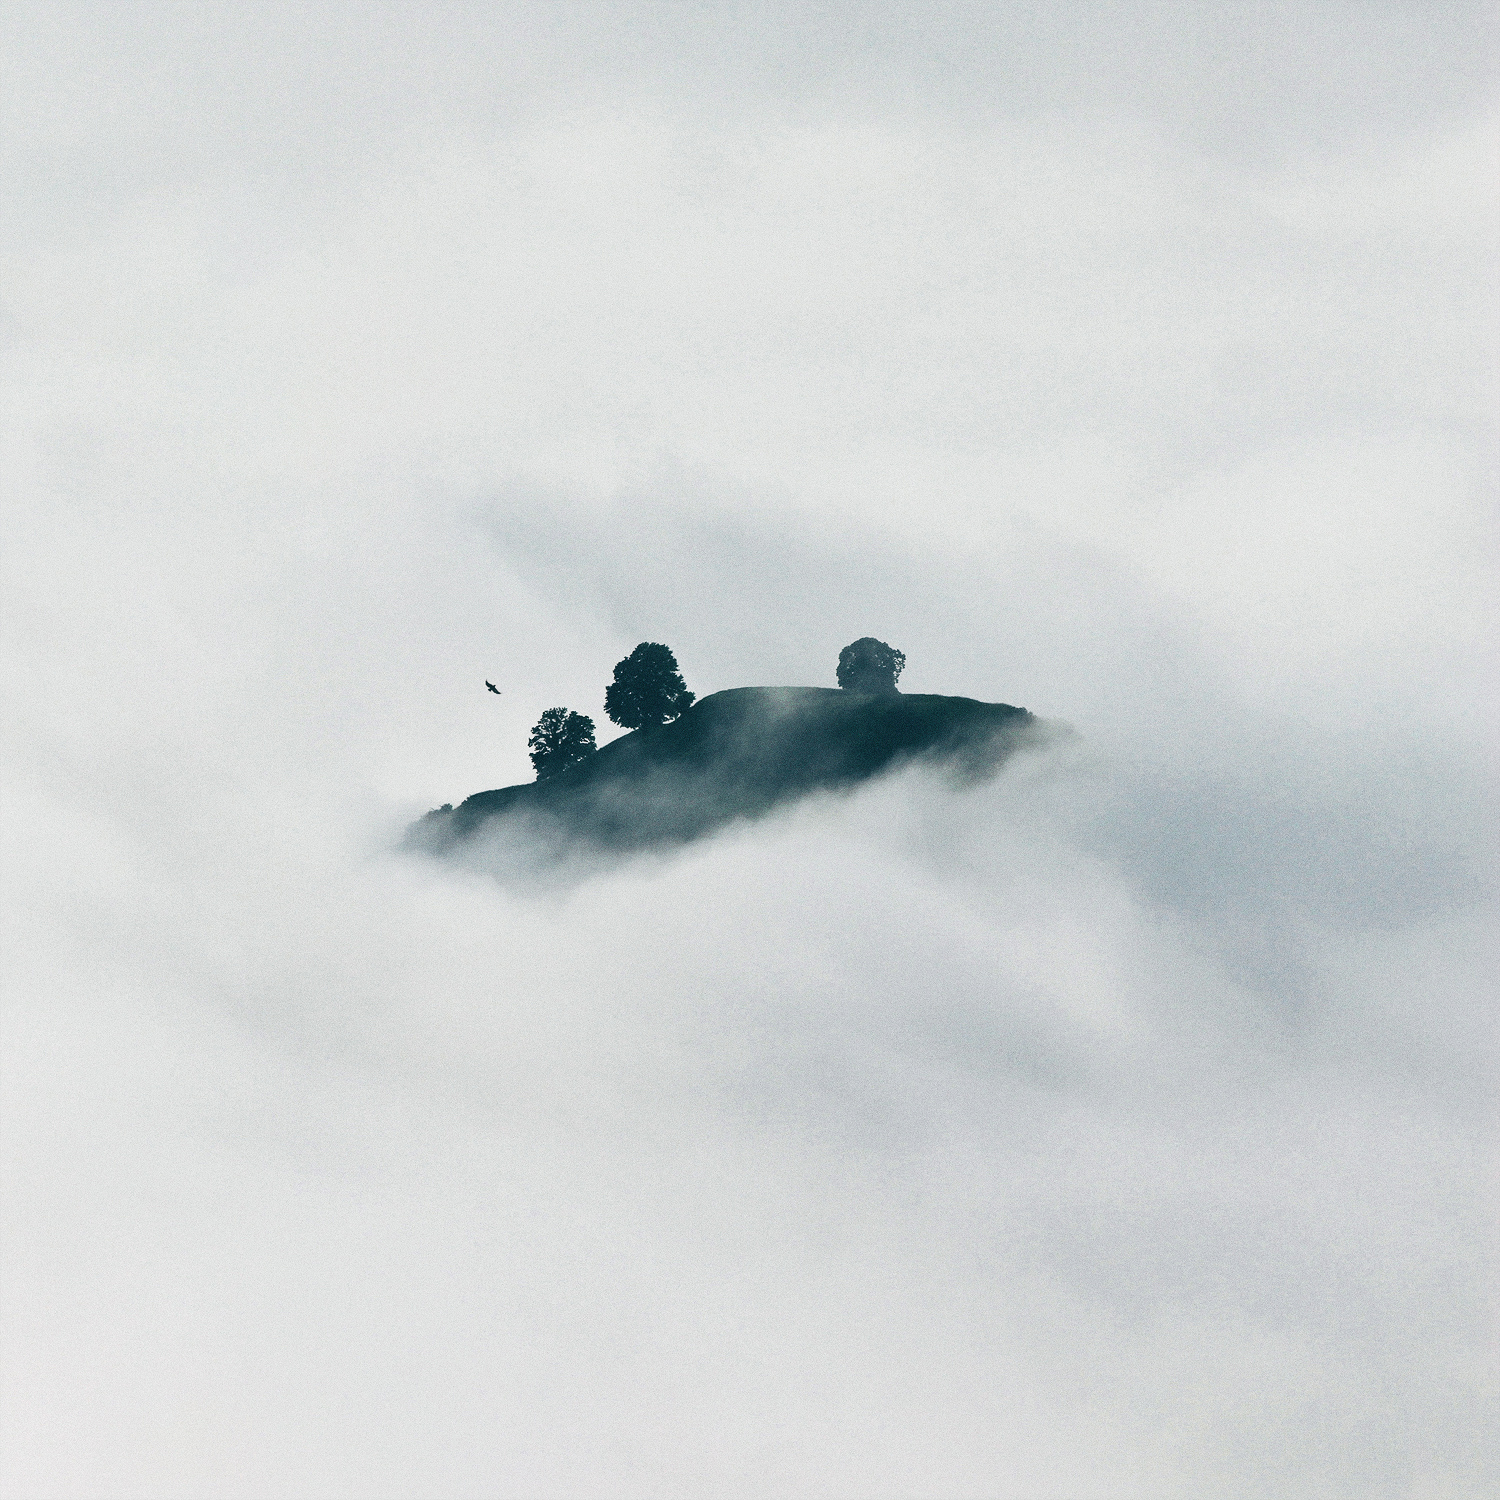 In the Clouds by Herm the Younger